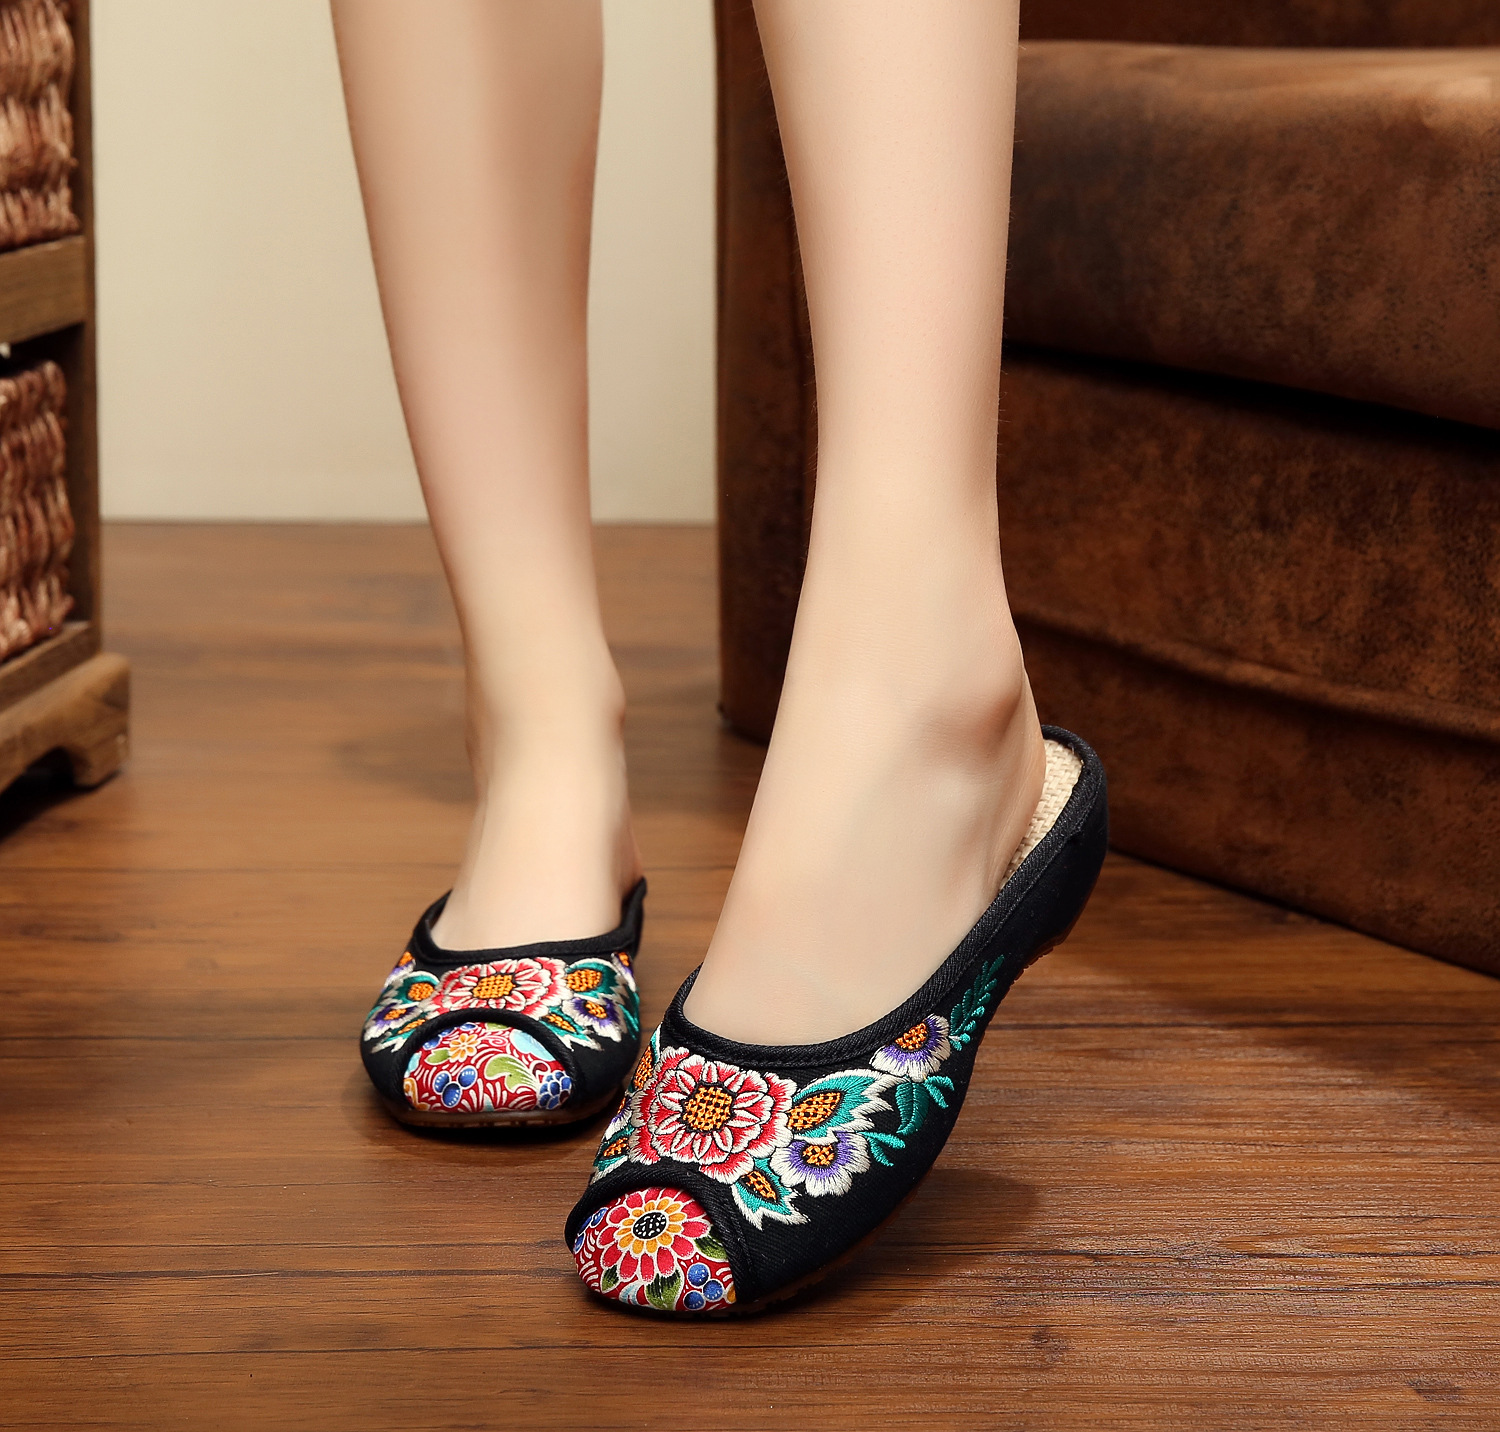 Floral Embroidered Elegant Flat Heeled Women Summer Slippers Vintage Ethnic Style Casual Flats Round Toe Shoes SMYXHX-D0195 free shipping wholesale price 30m a lot high quality l amy green matte vinyl car wrap film car sticker with bubble free bw 9013